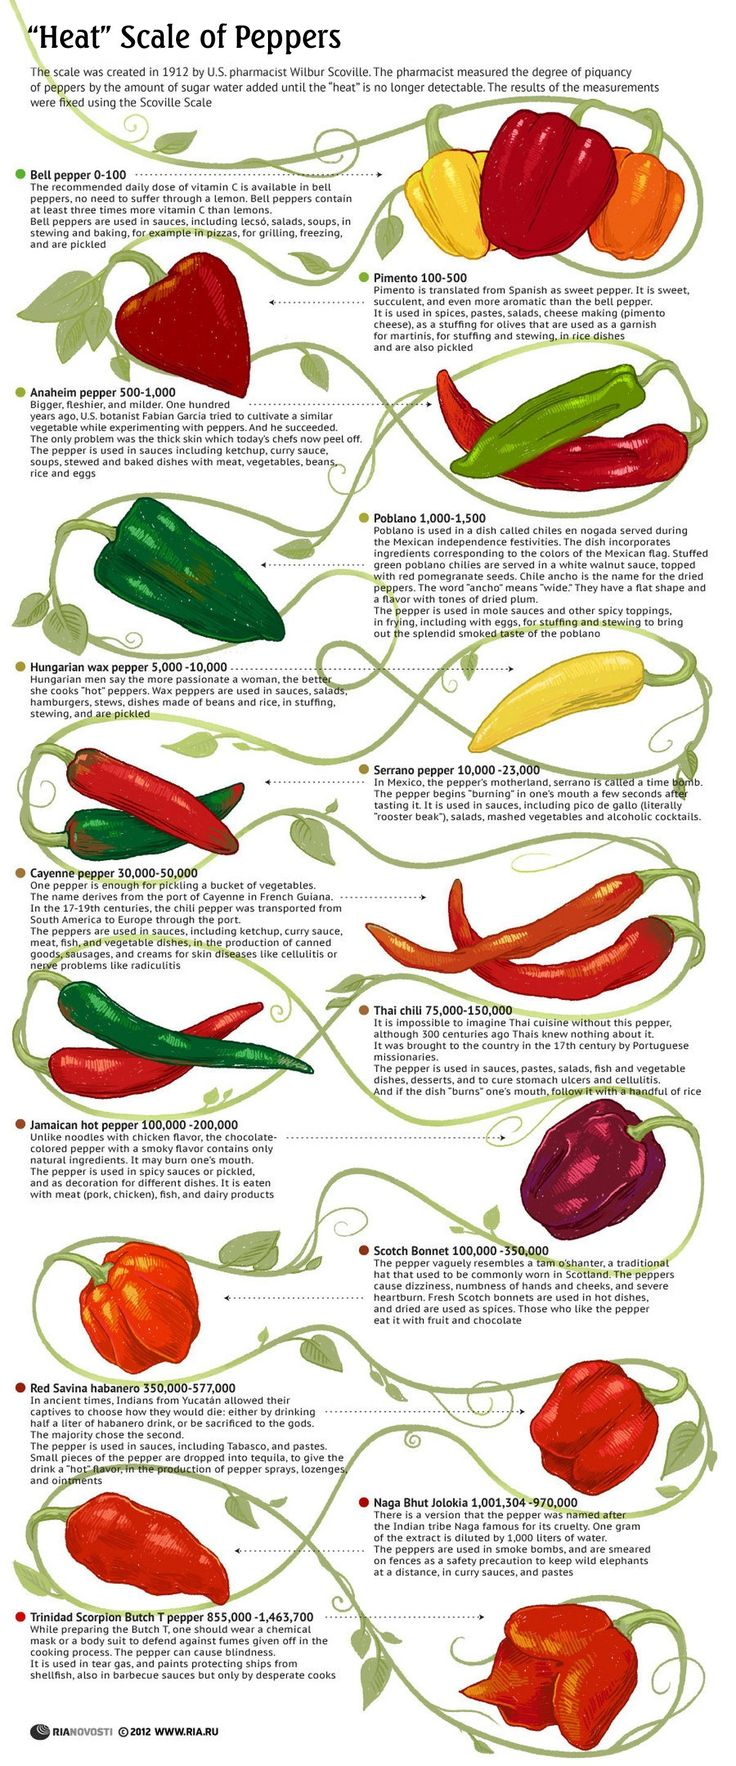 """HEAT"" SCALE OF PEPPERS – we all stare at the bins of peppers afraid to venture past mild-mannered bells, simply because we have no idea if we're about to seriously sear someone in the heat department. Thanks to this handy chart, now we know – the scorpian butch T is a pepper to fear! Don't you think the name might have something to do with it? Seriously, one is advised to where a mask and body suit to defend against fumes! Yikes!"